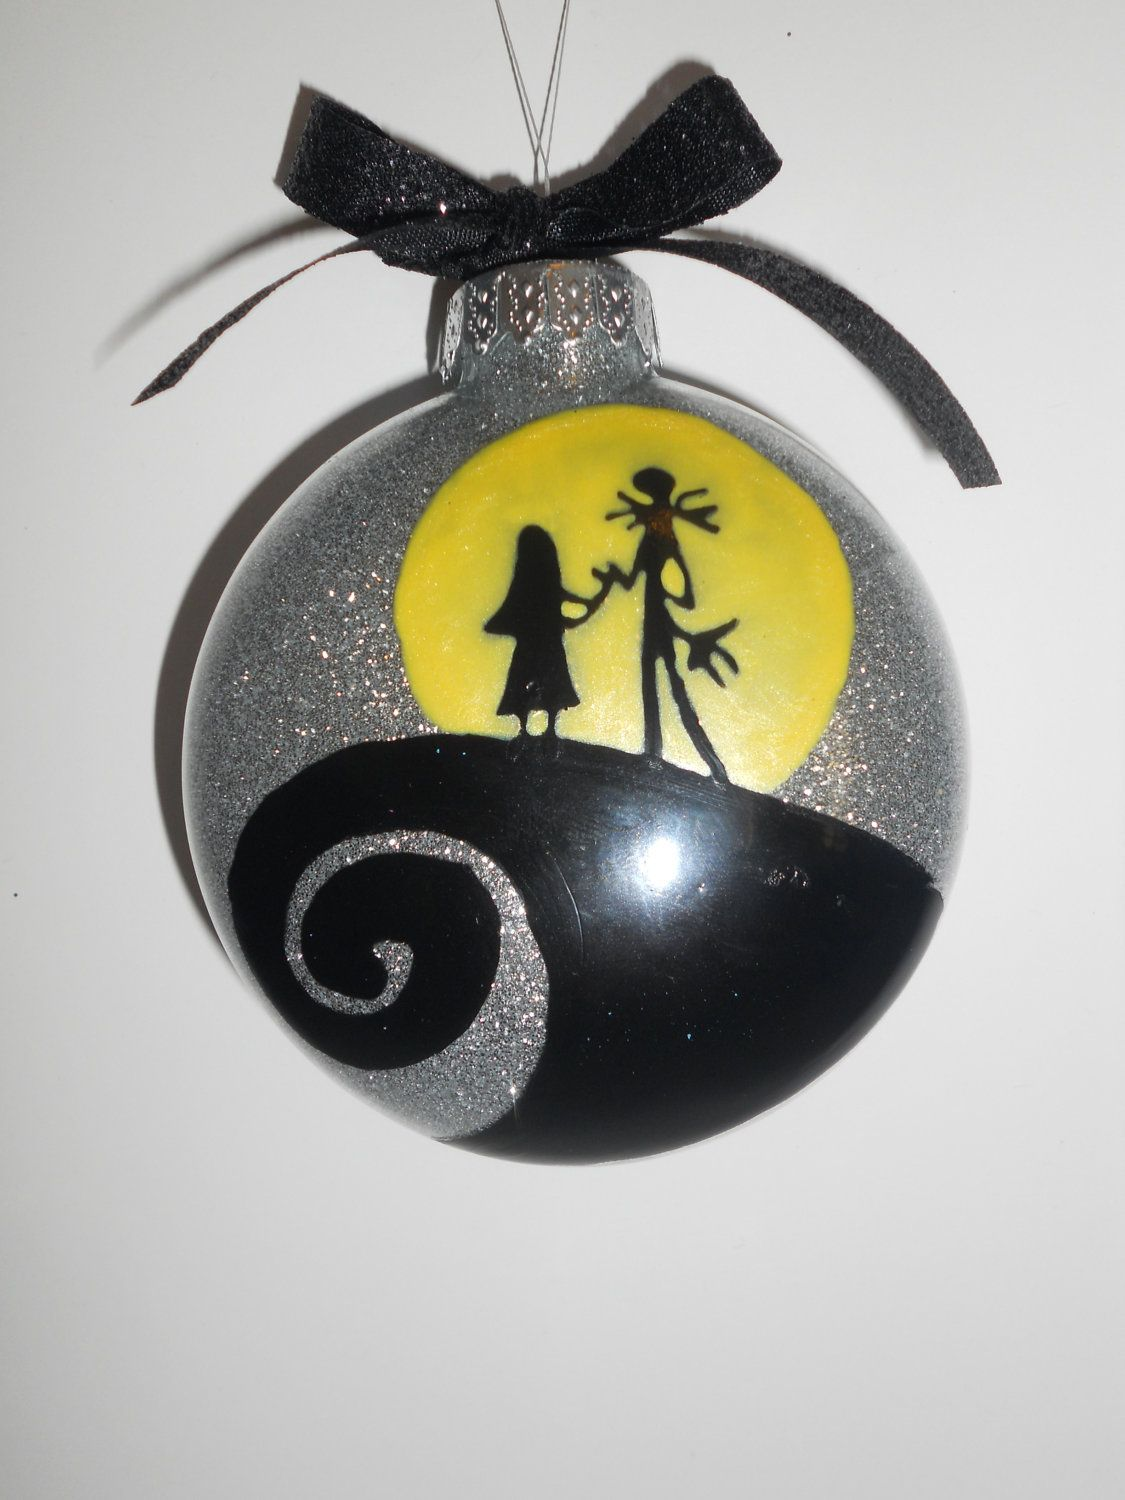 The nightmare before christmas ornaments - Nightmare Before Christmas Couple Ornament